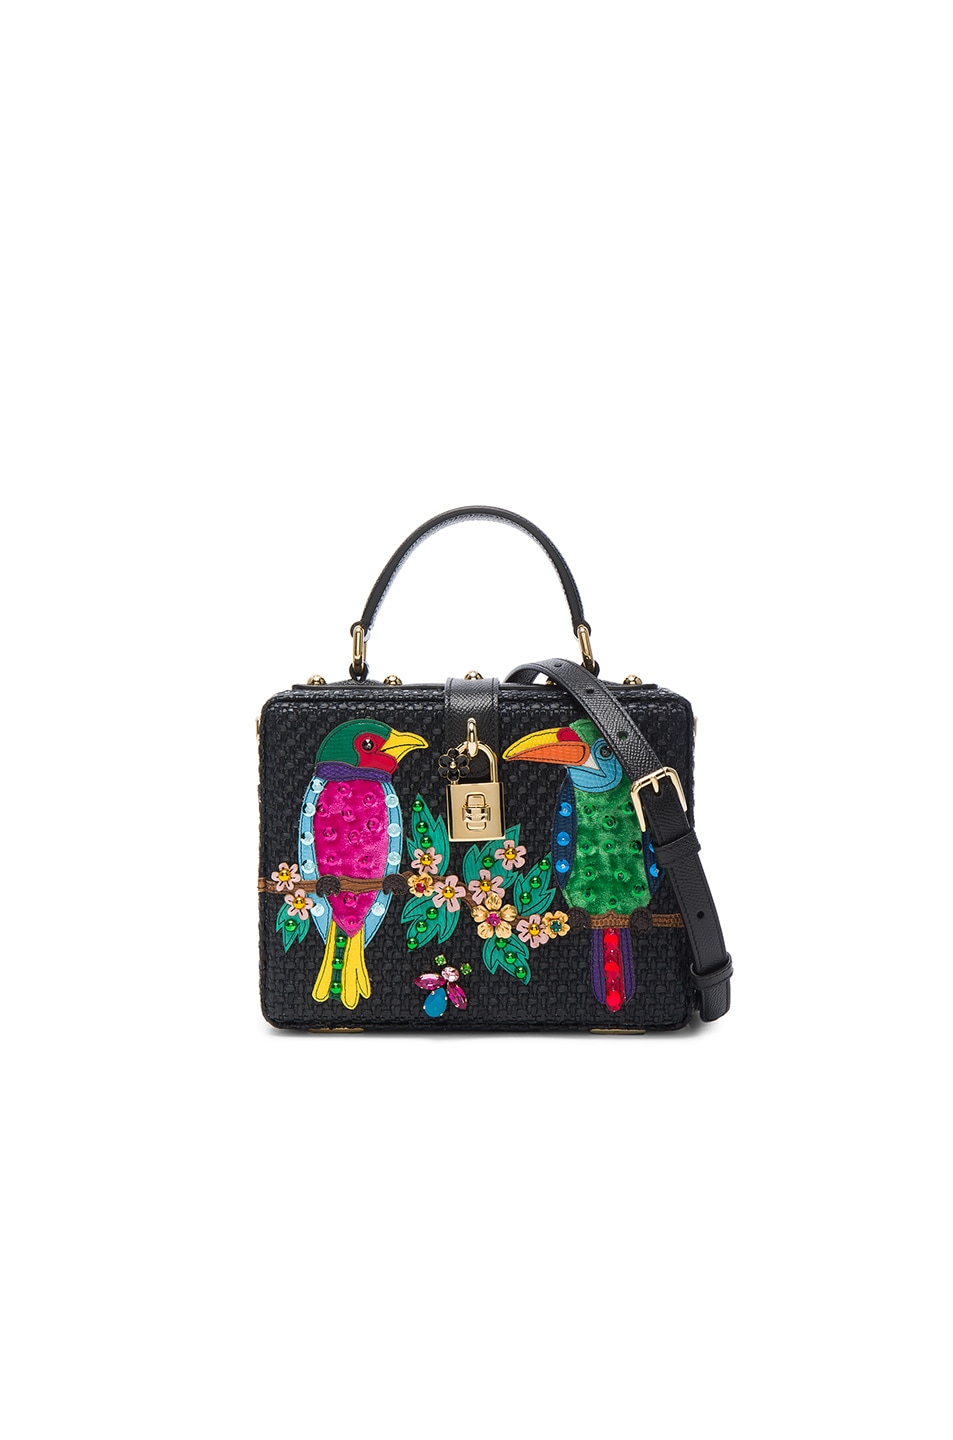 Image 1 of Dolce & Gabbana Top Handle Bag in Black Multi